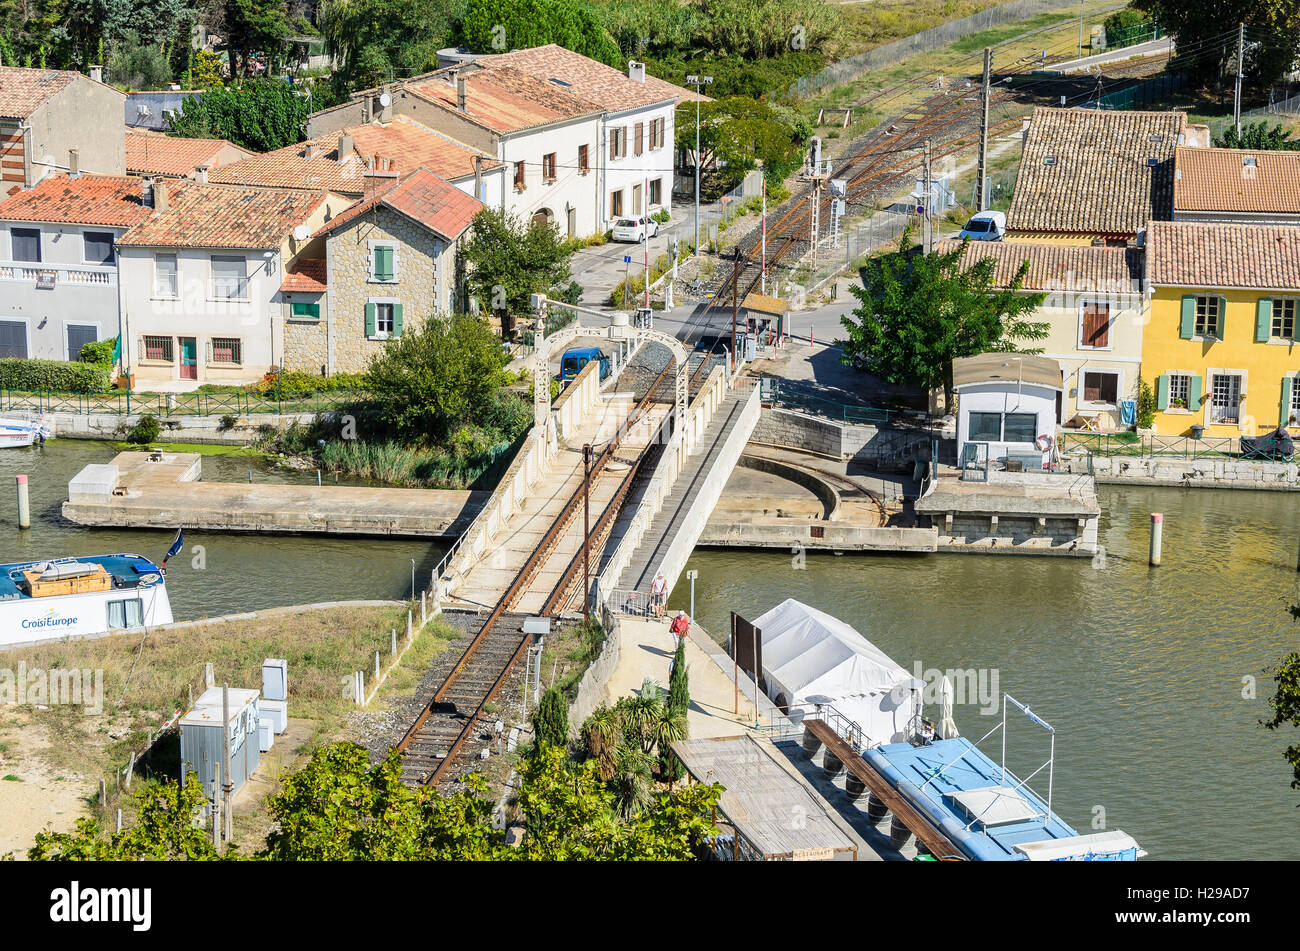 Rhône, Aigues Mortes, remparts, Gard, France - Stock Image